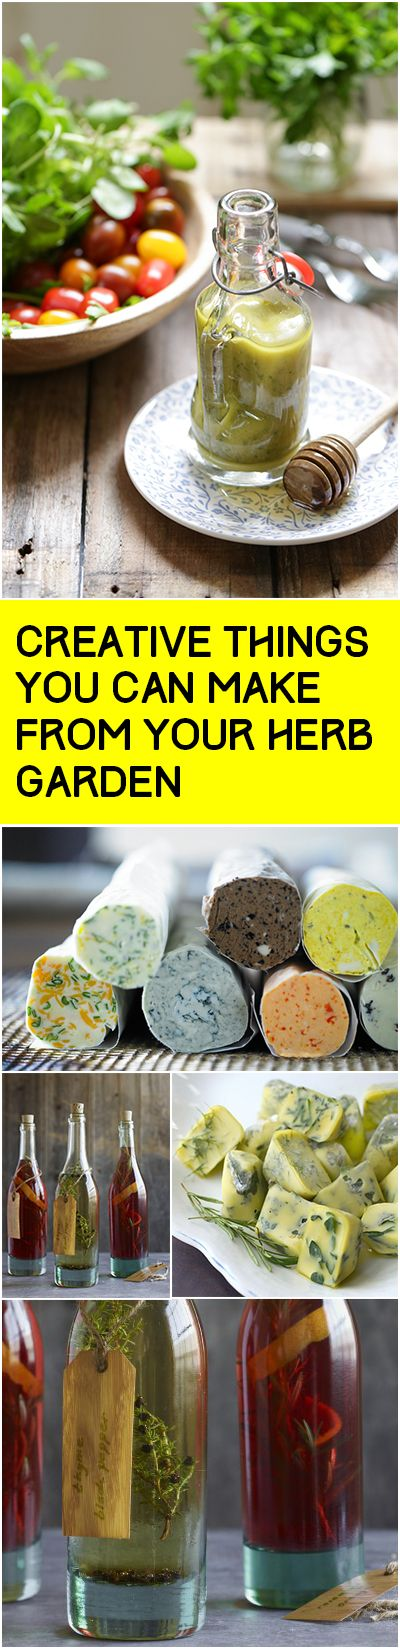 Creative Things You can Make from Your Herb Garden